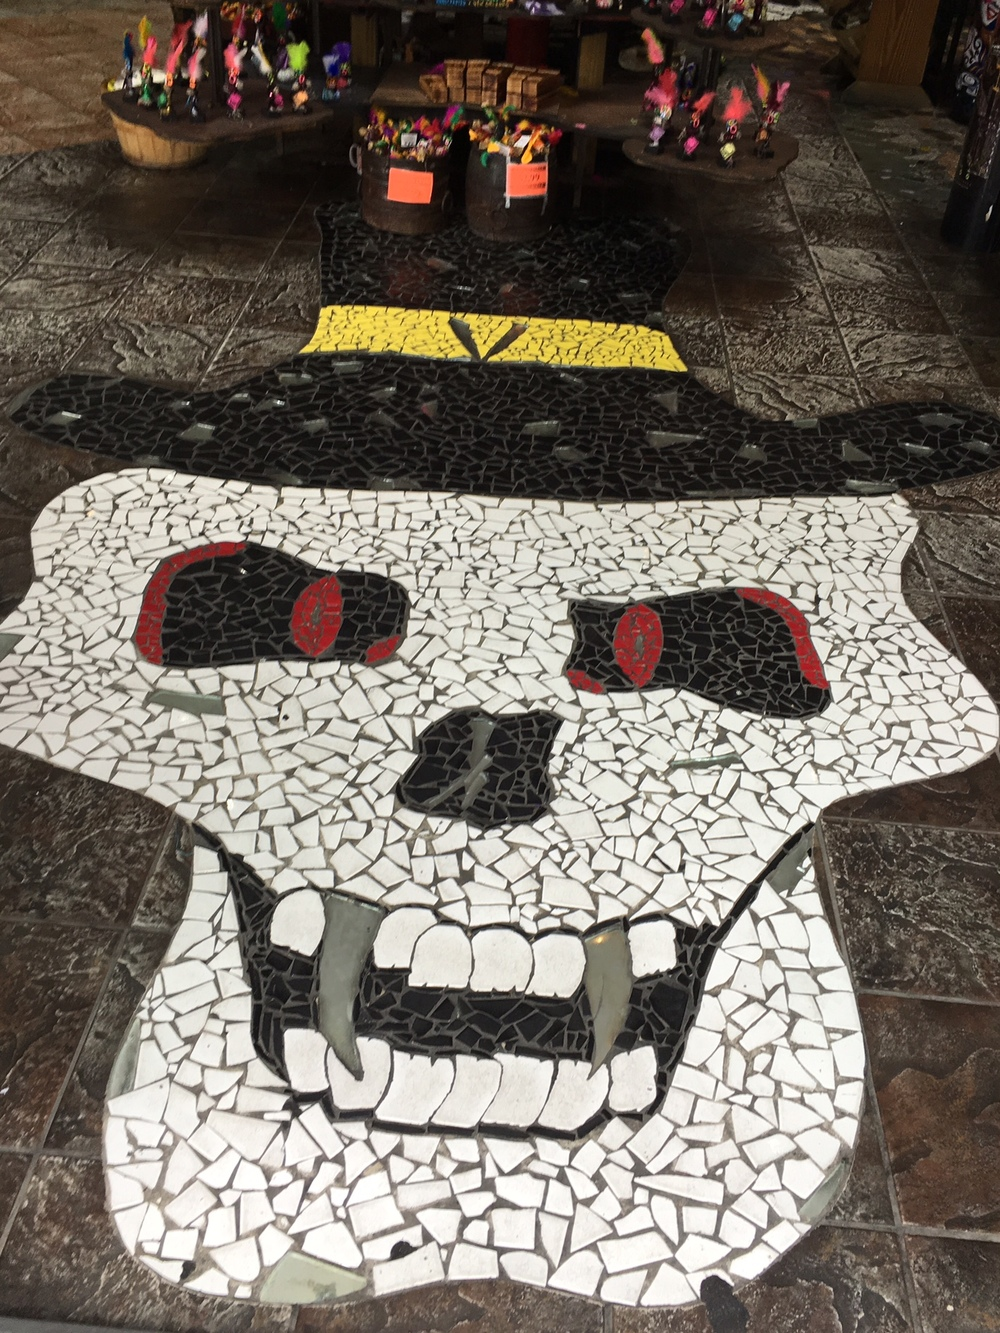 This is what the floor looked like right when you walked into one of the Voodoo stores on the businessy-side of New Orleans. Also, the Voodoo dolls you see above the skull were pretty much what all the Voodoo dolls looked like.